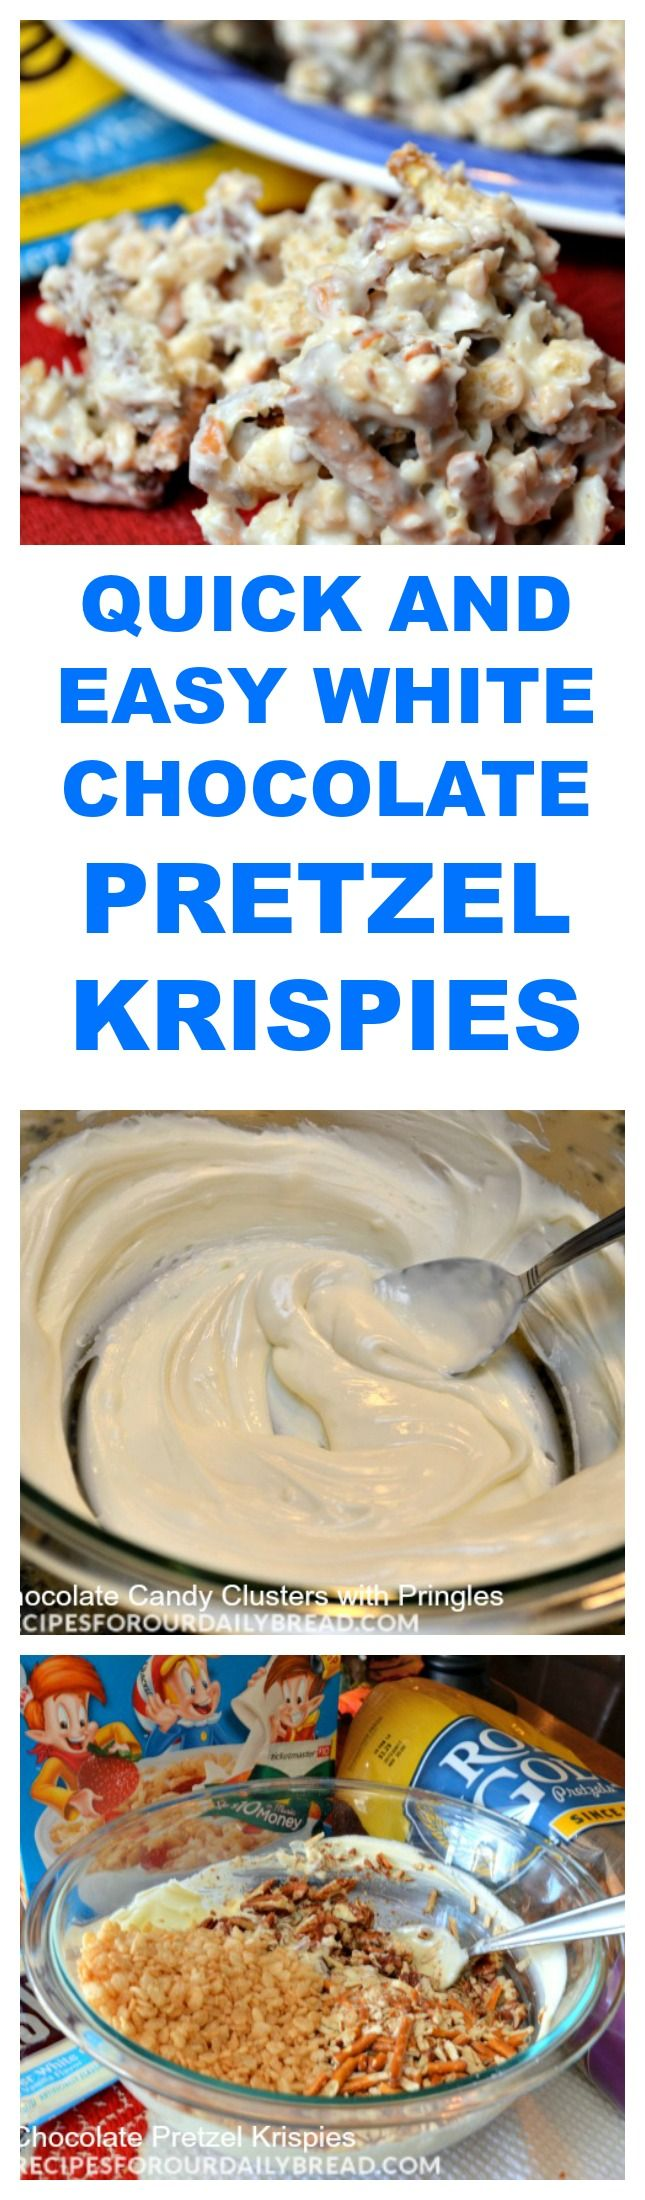 QUICK AND EASY WHITE CHOCOLATE PRETZEL KRISPIES